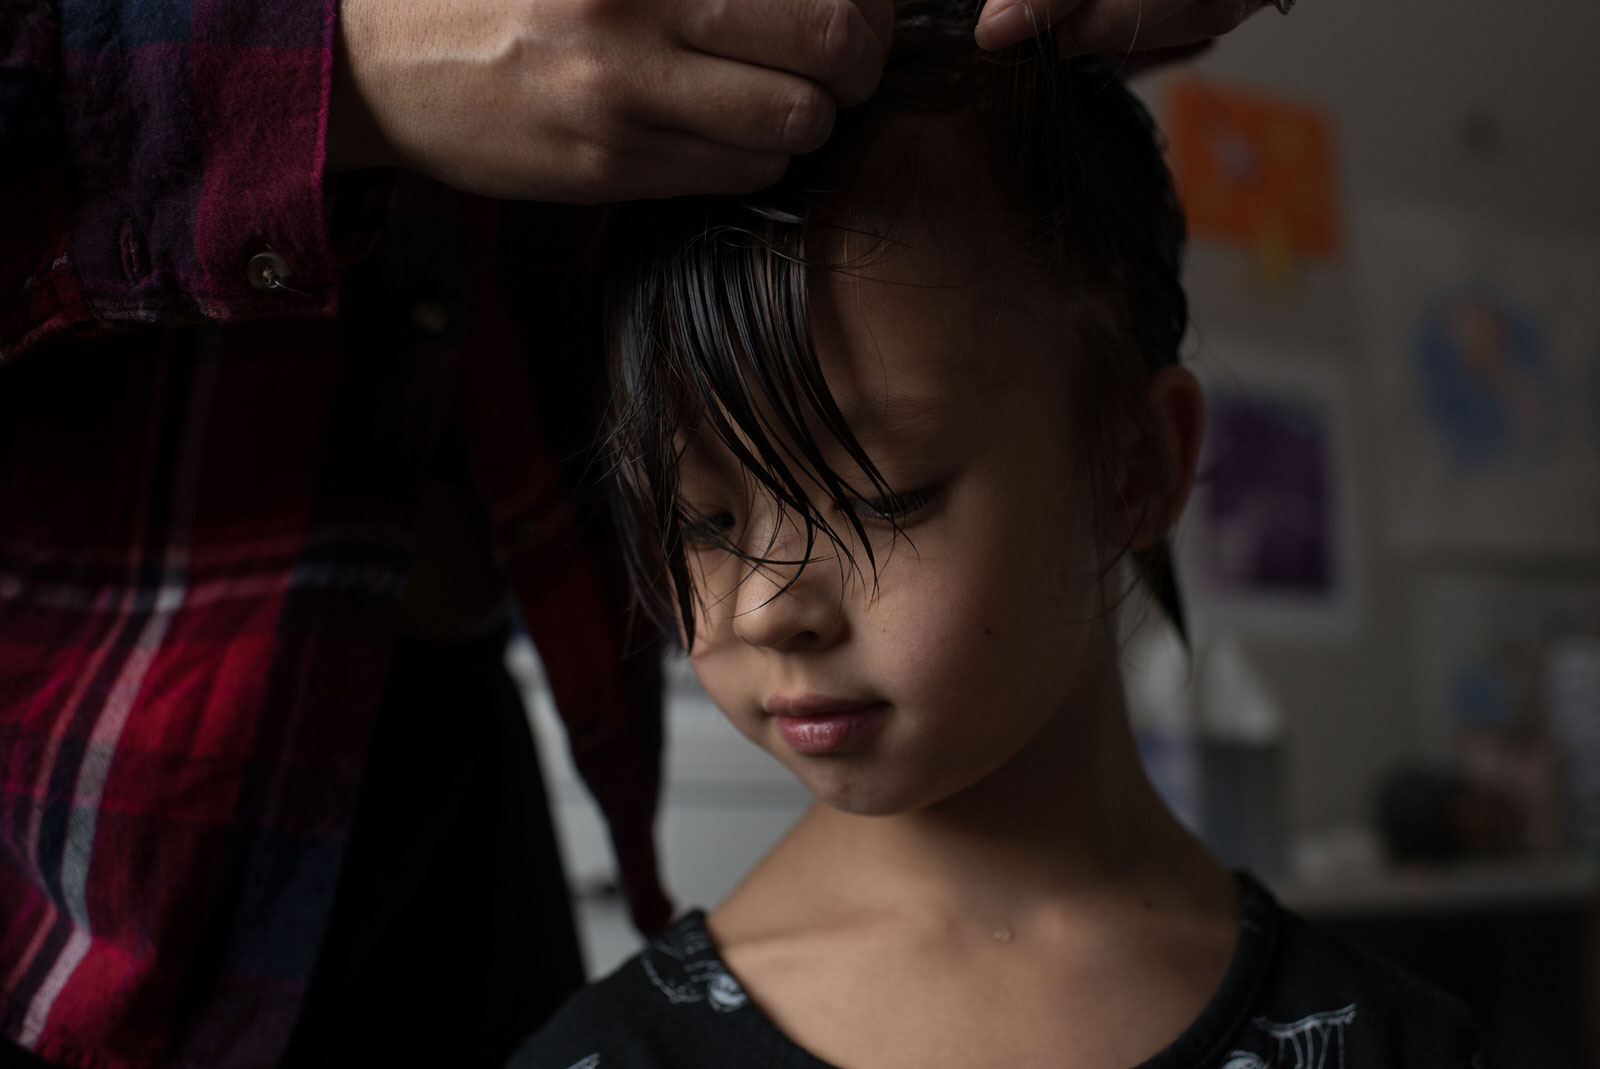 Age 6. For years, he has asked for long hair. He asks that we stop taking him for hair cuts and we oblige. After 5 months, it is long enough to braid. I water it down while combing it to make it easier to braid.